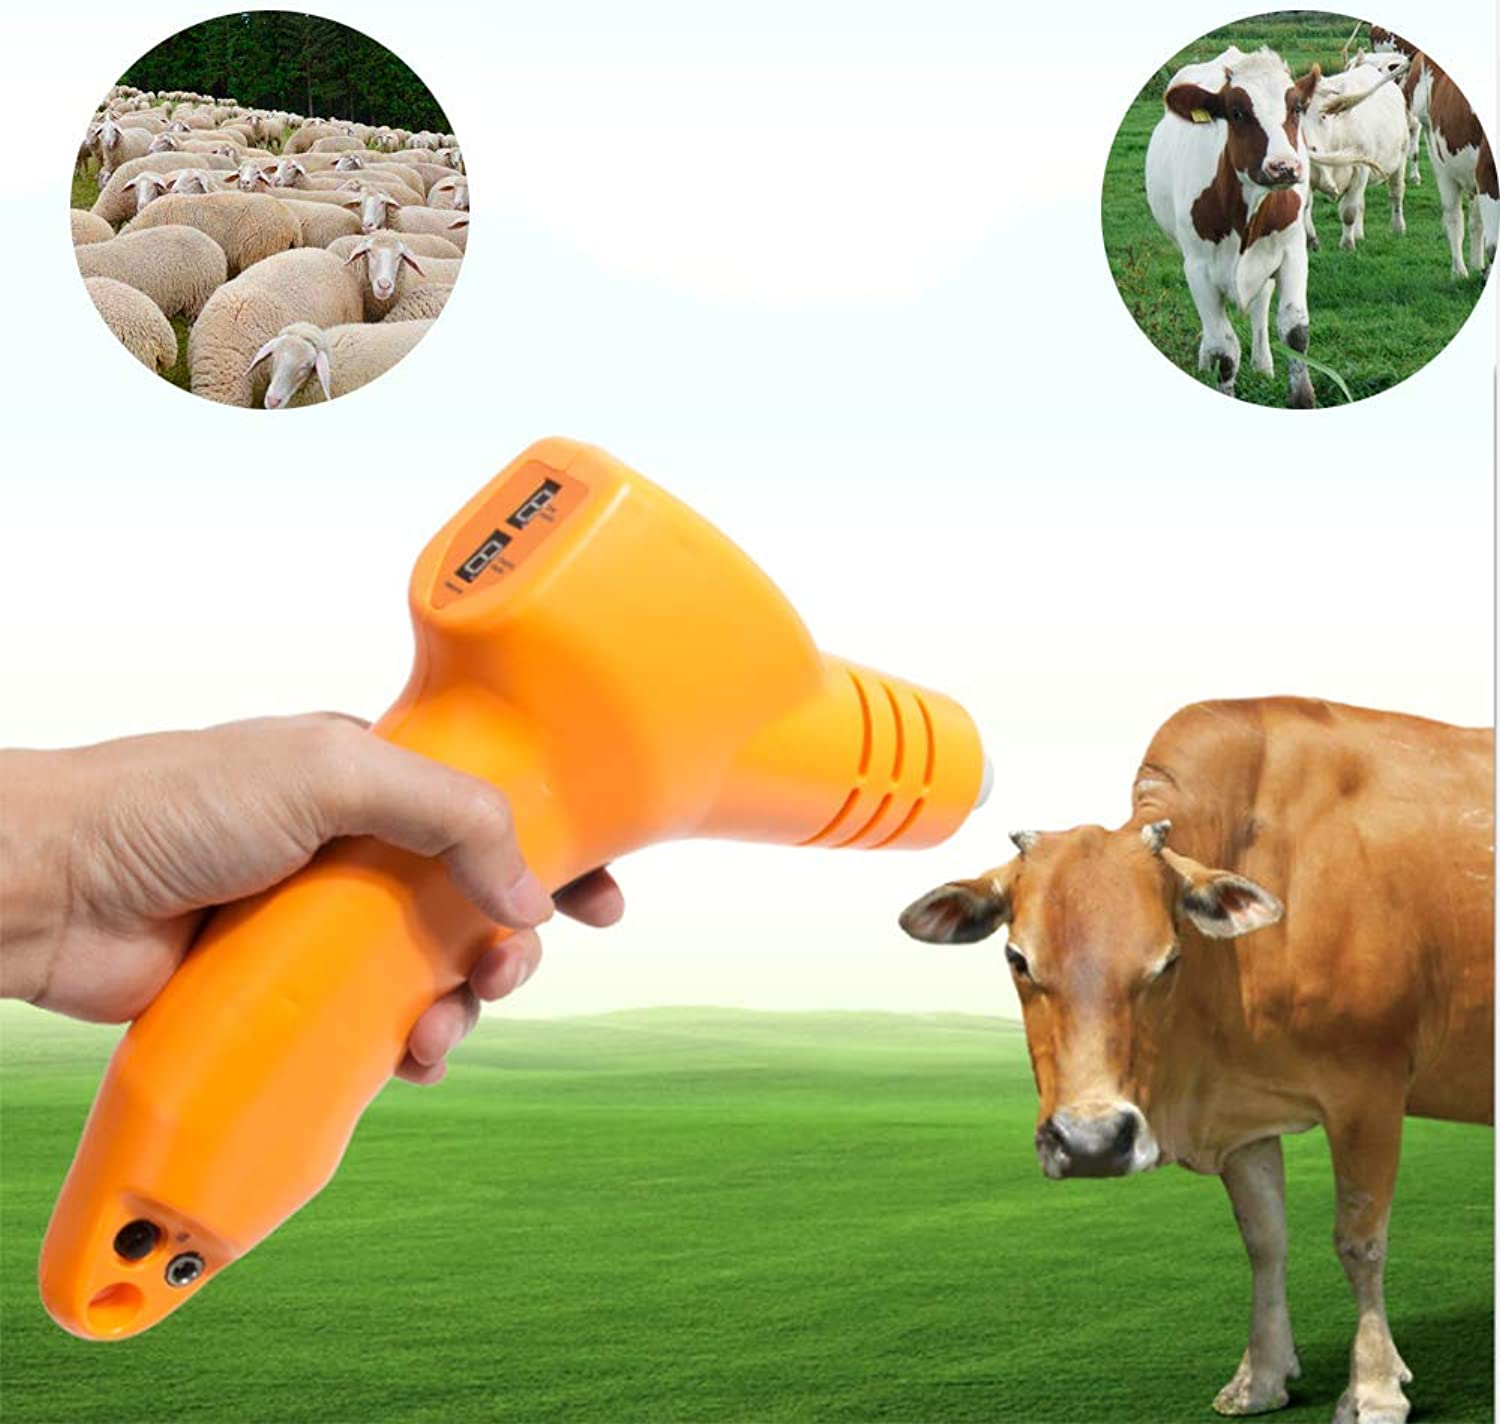 Butane Animal Dehorner Kit Fast Heating Cattle Head Airgun Type Calf Chamfer Electric Iron Ceramic Bloodless Angle Devices for Lamb Calf